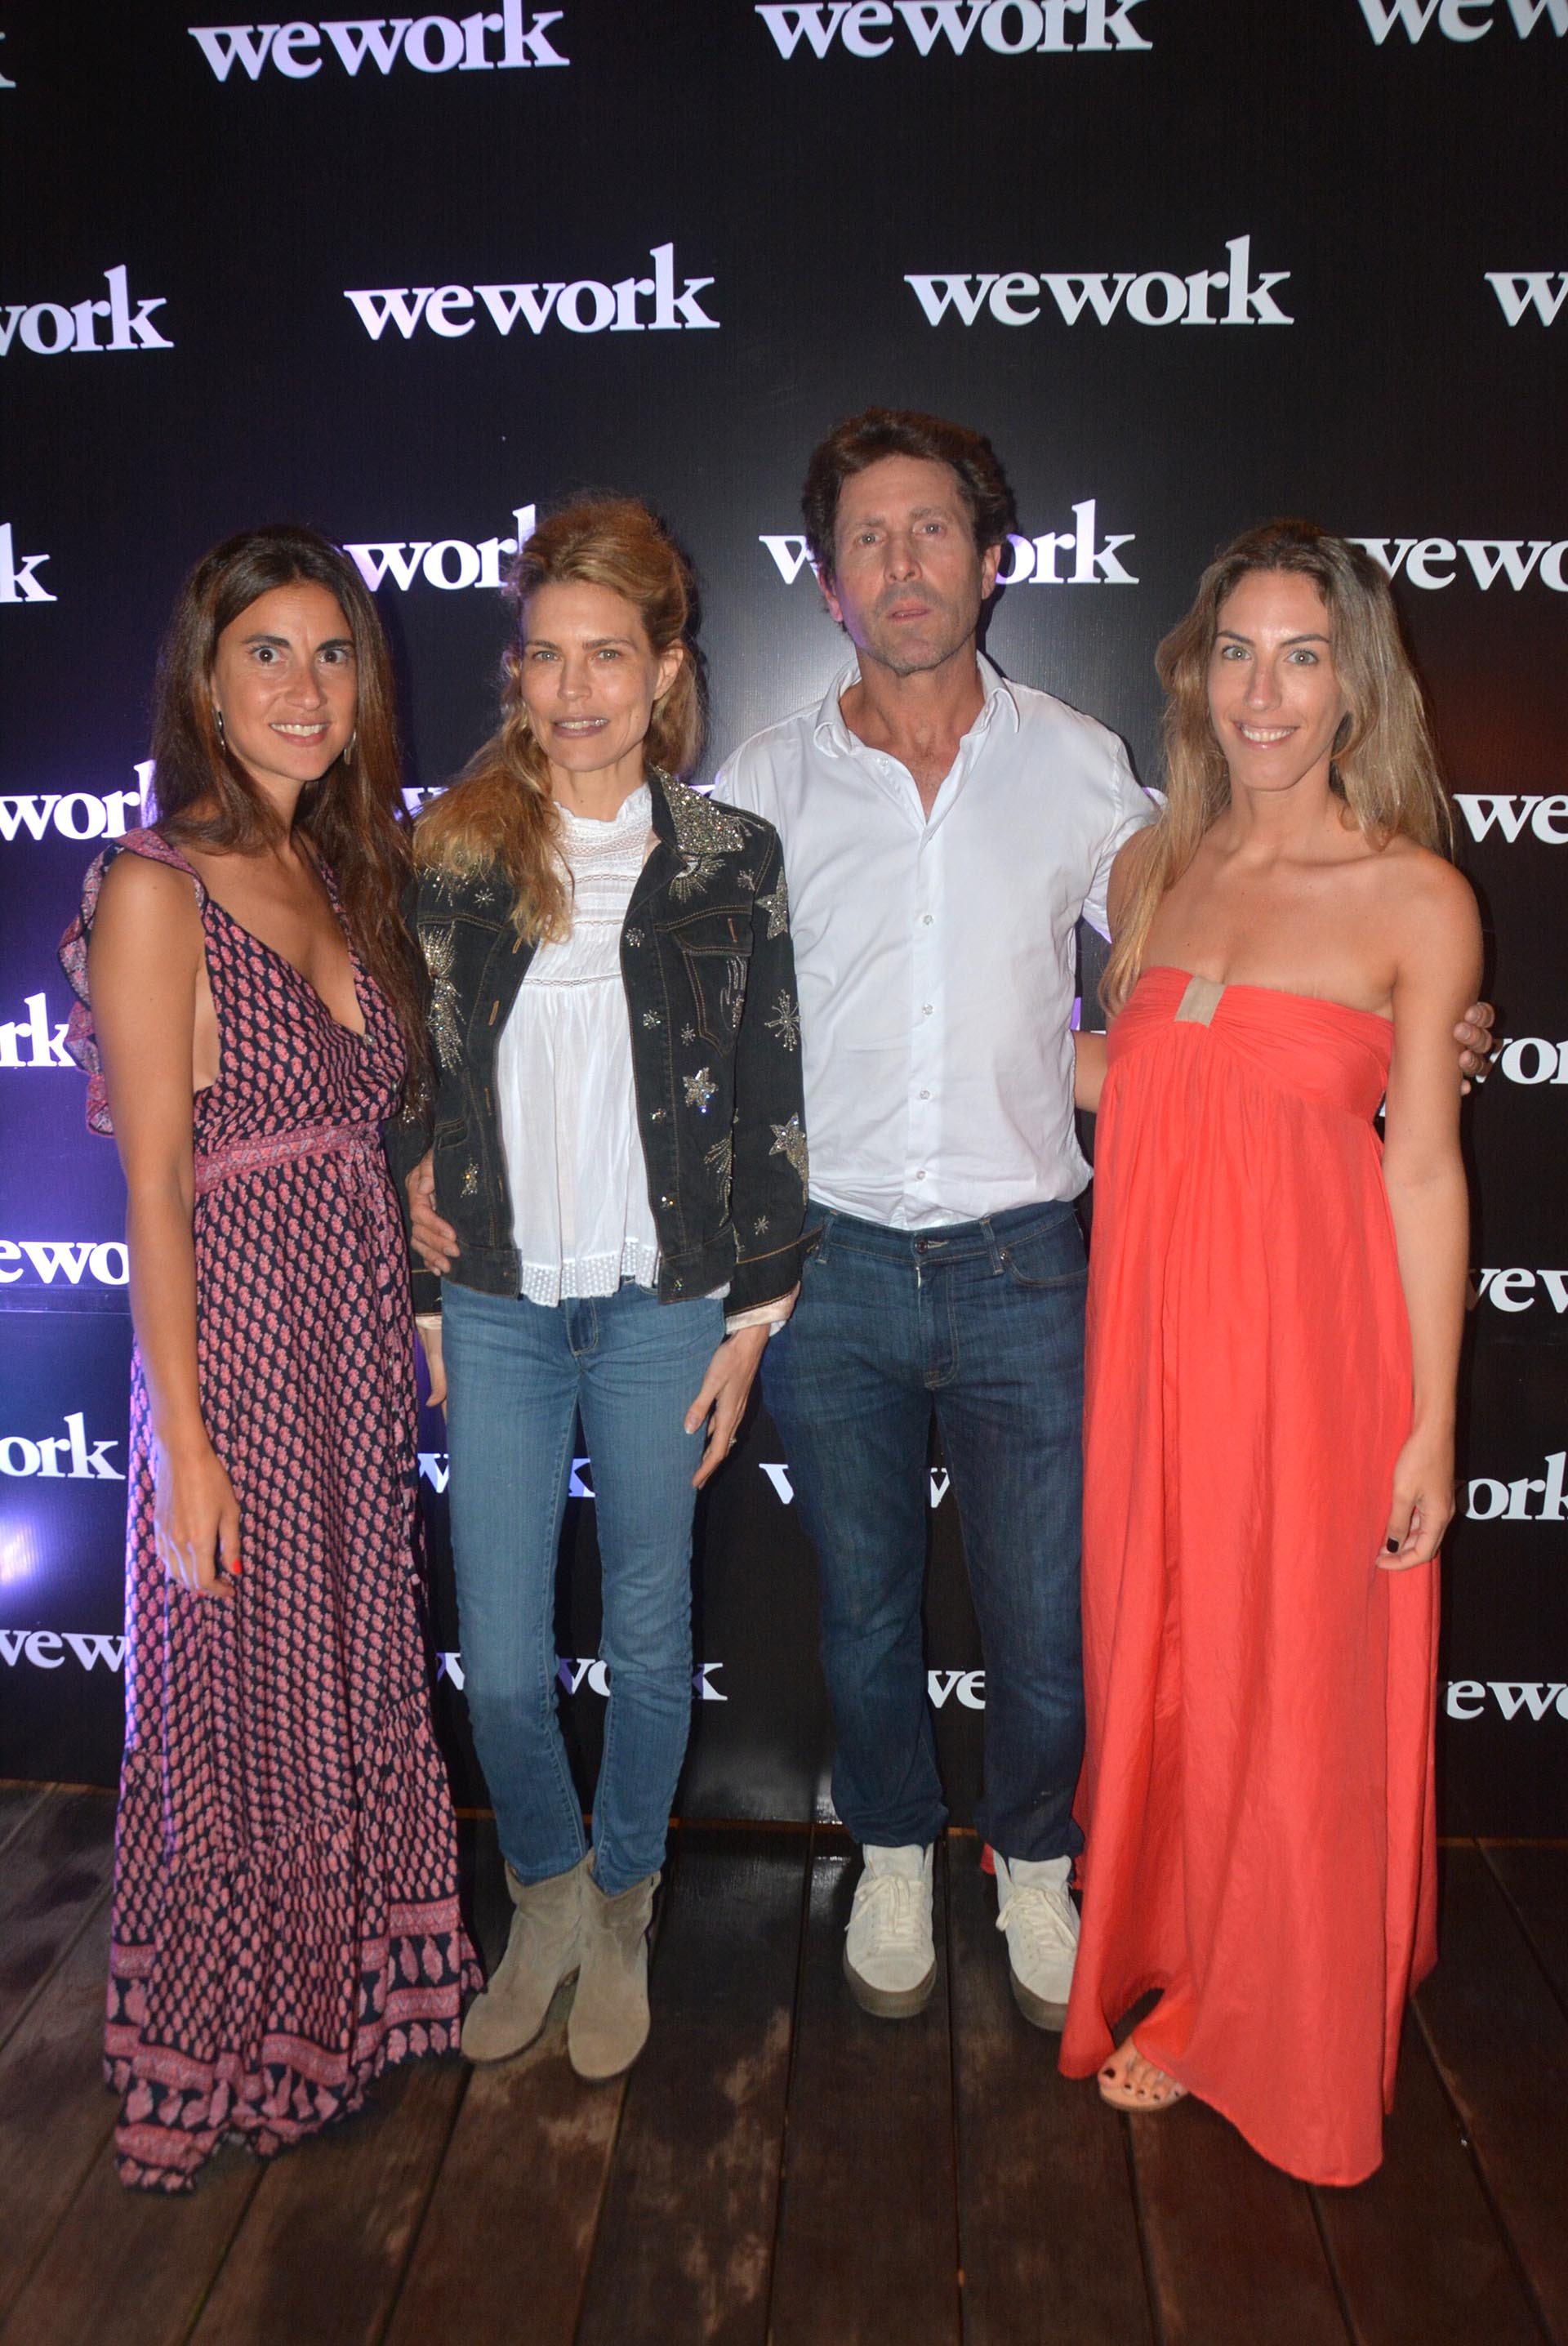 Agustina Maljkovic, Marketing WeWork Argentina & Chile; Julieta Kemble y su marido Justo Saavedra, y Mariela Packer, Sales Manager Argentina & Chile